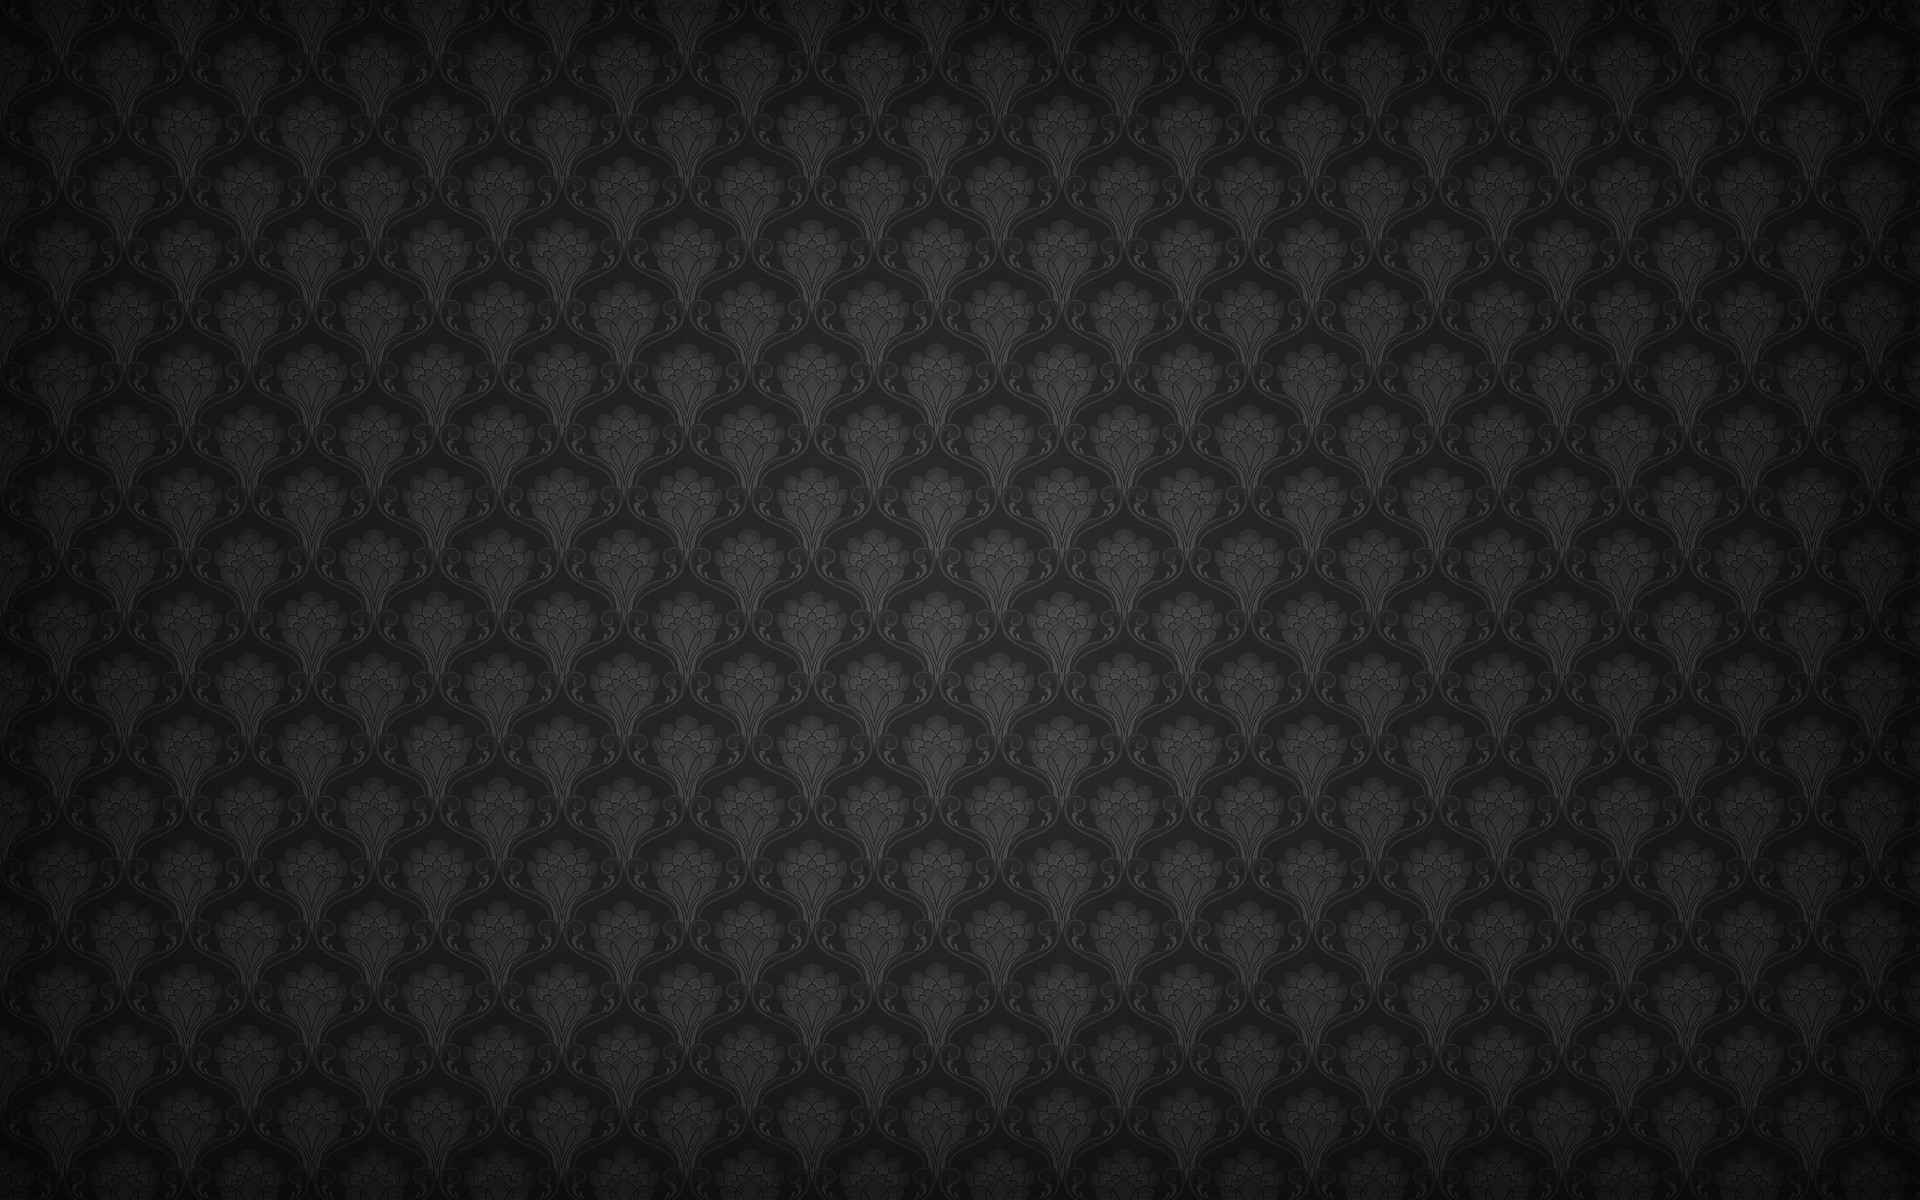 1920x1200 Black And Gold Wallpaper Android 7 Desktop Wallpaper